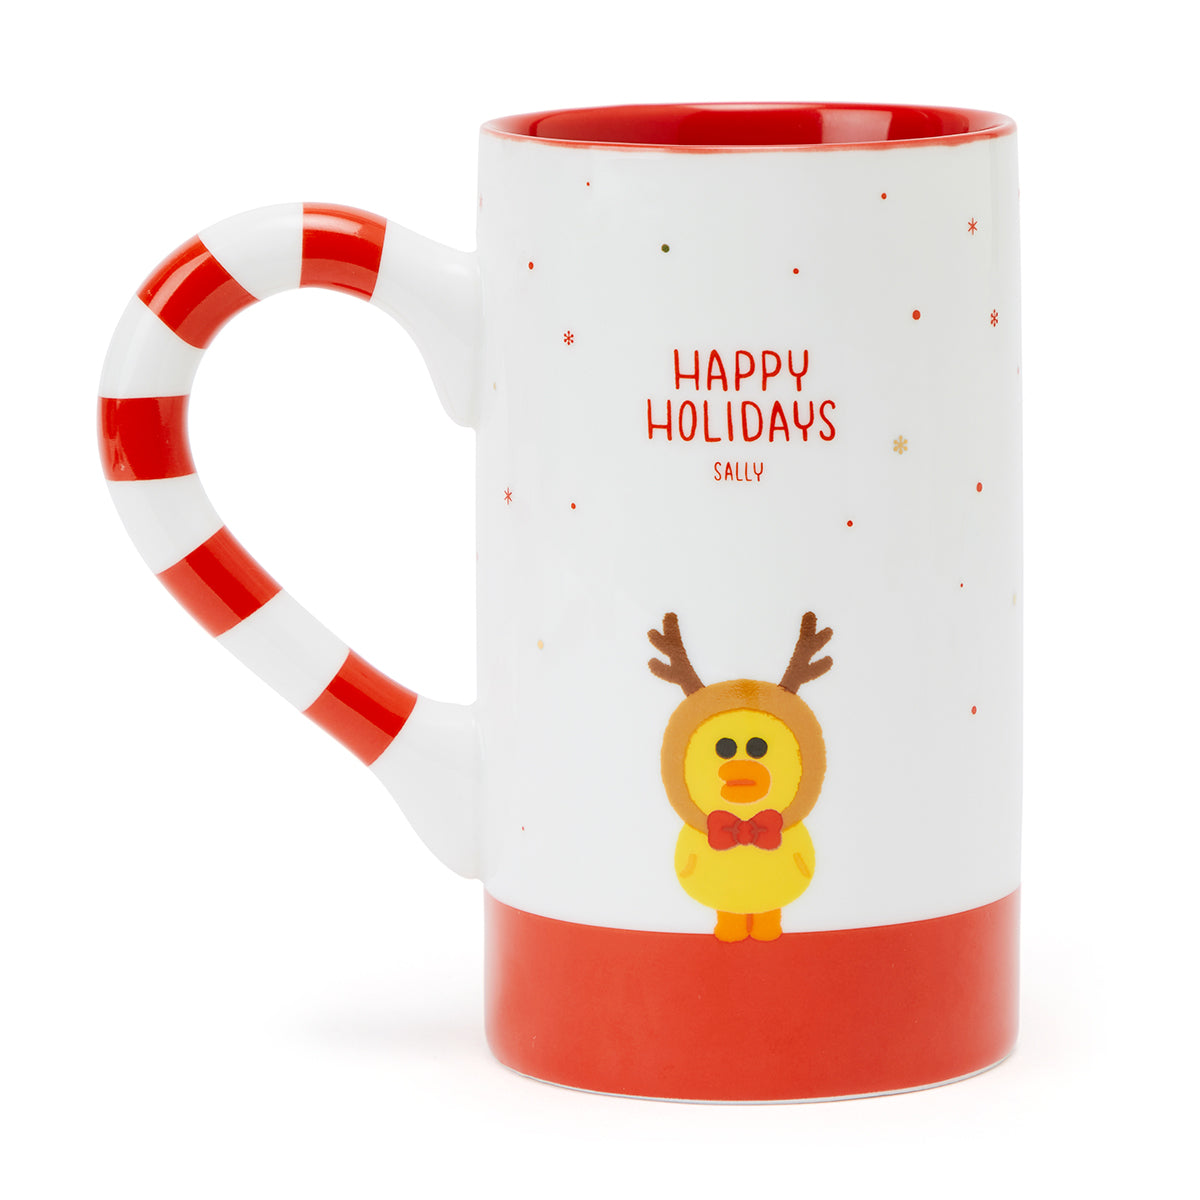 SALLY Ceramic Coffee Mug